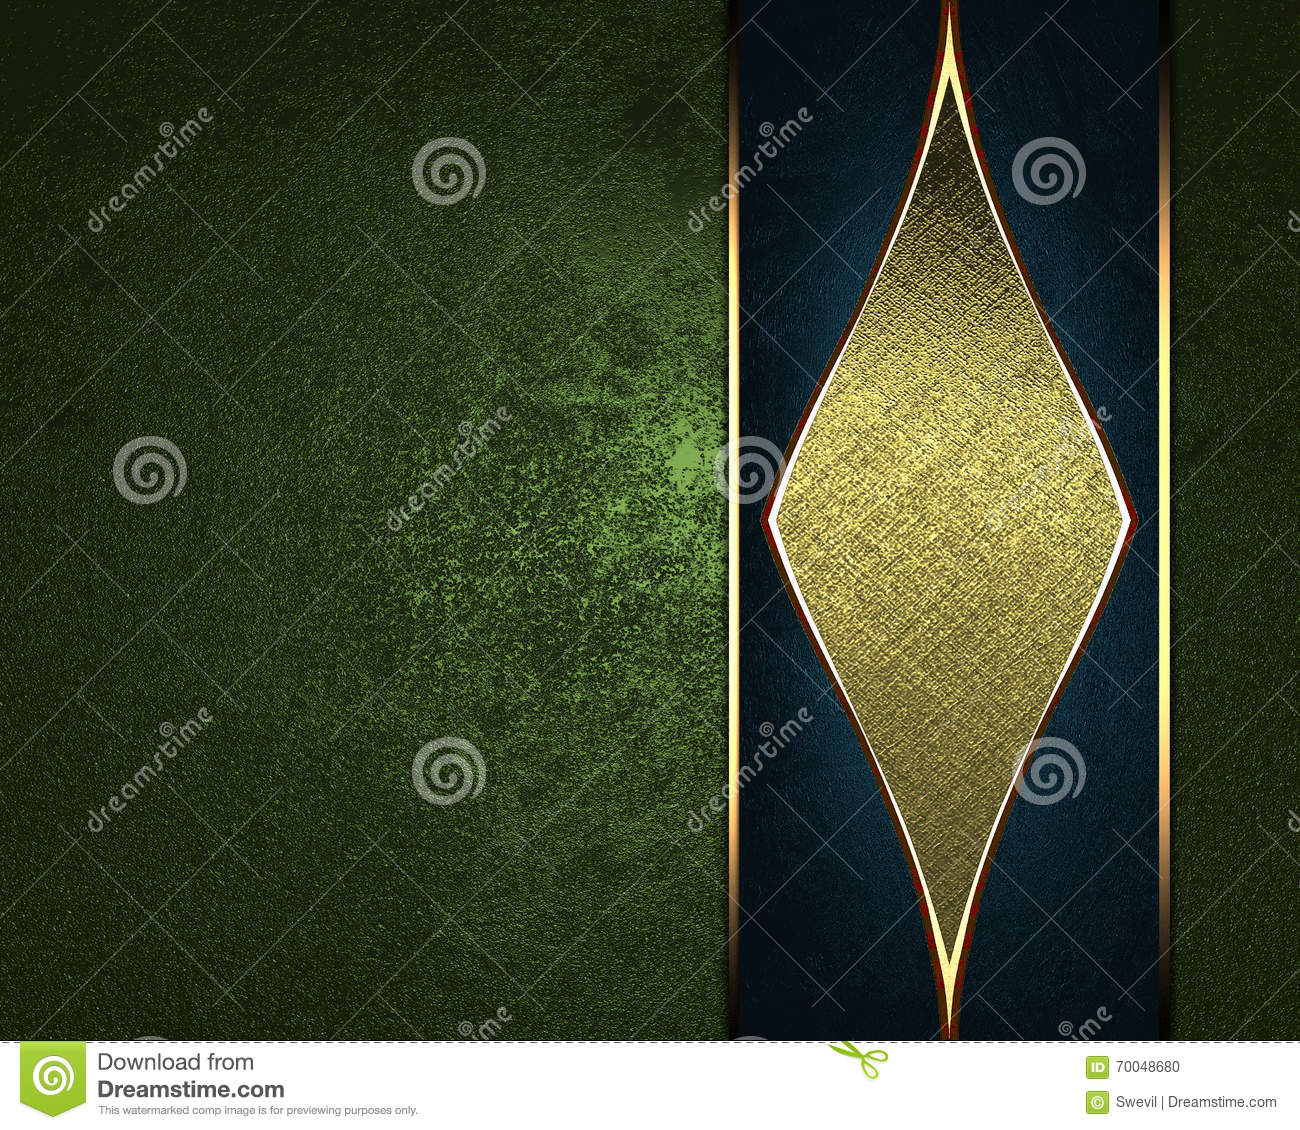 grunge green background with a gold ornament. template for design